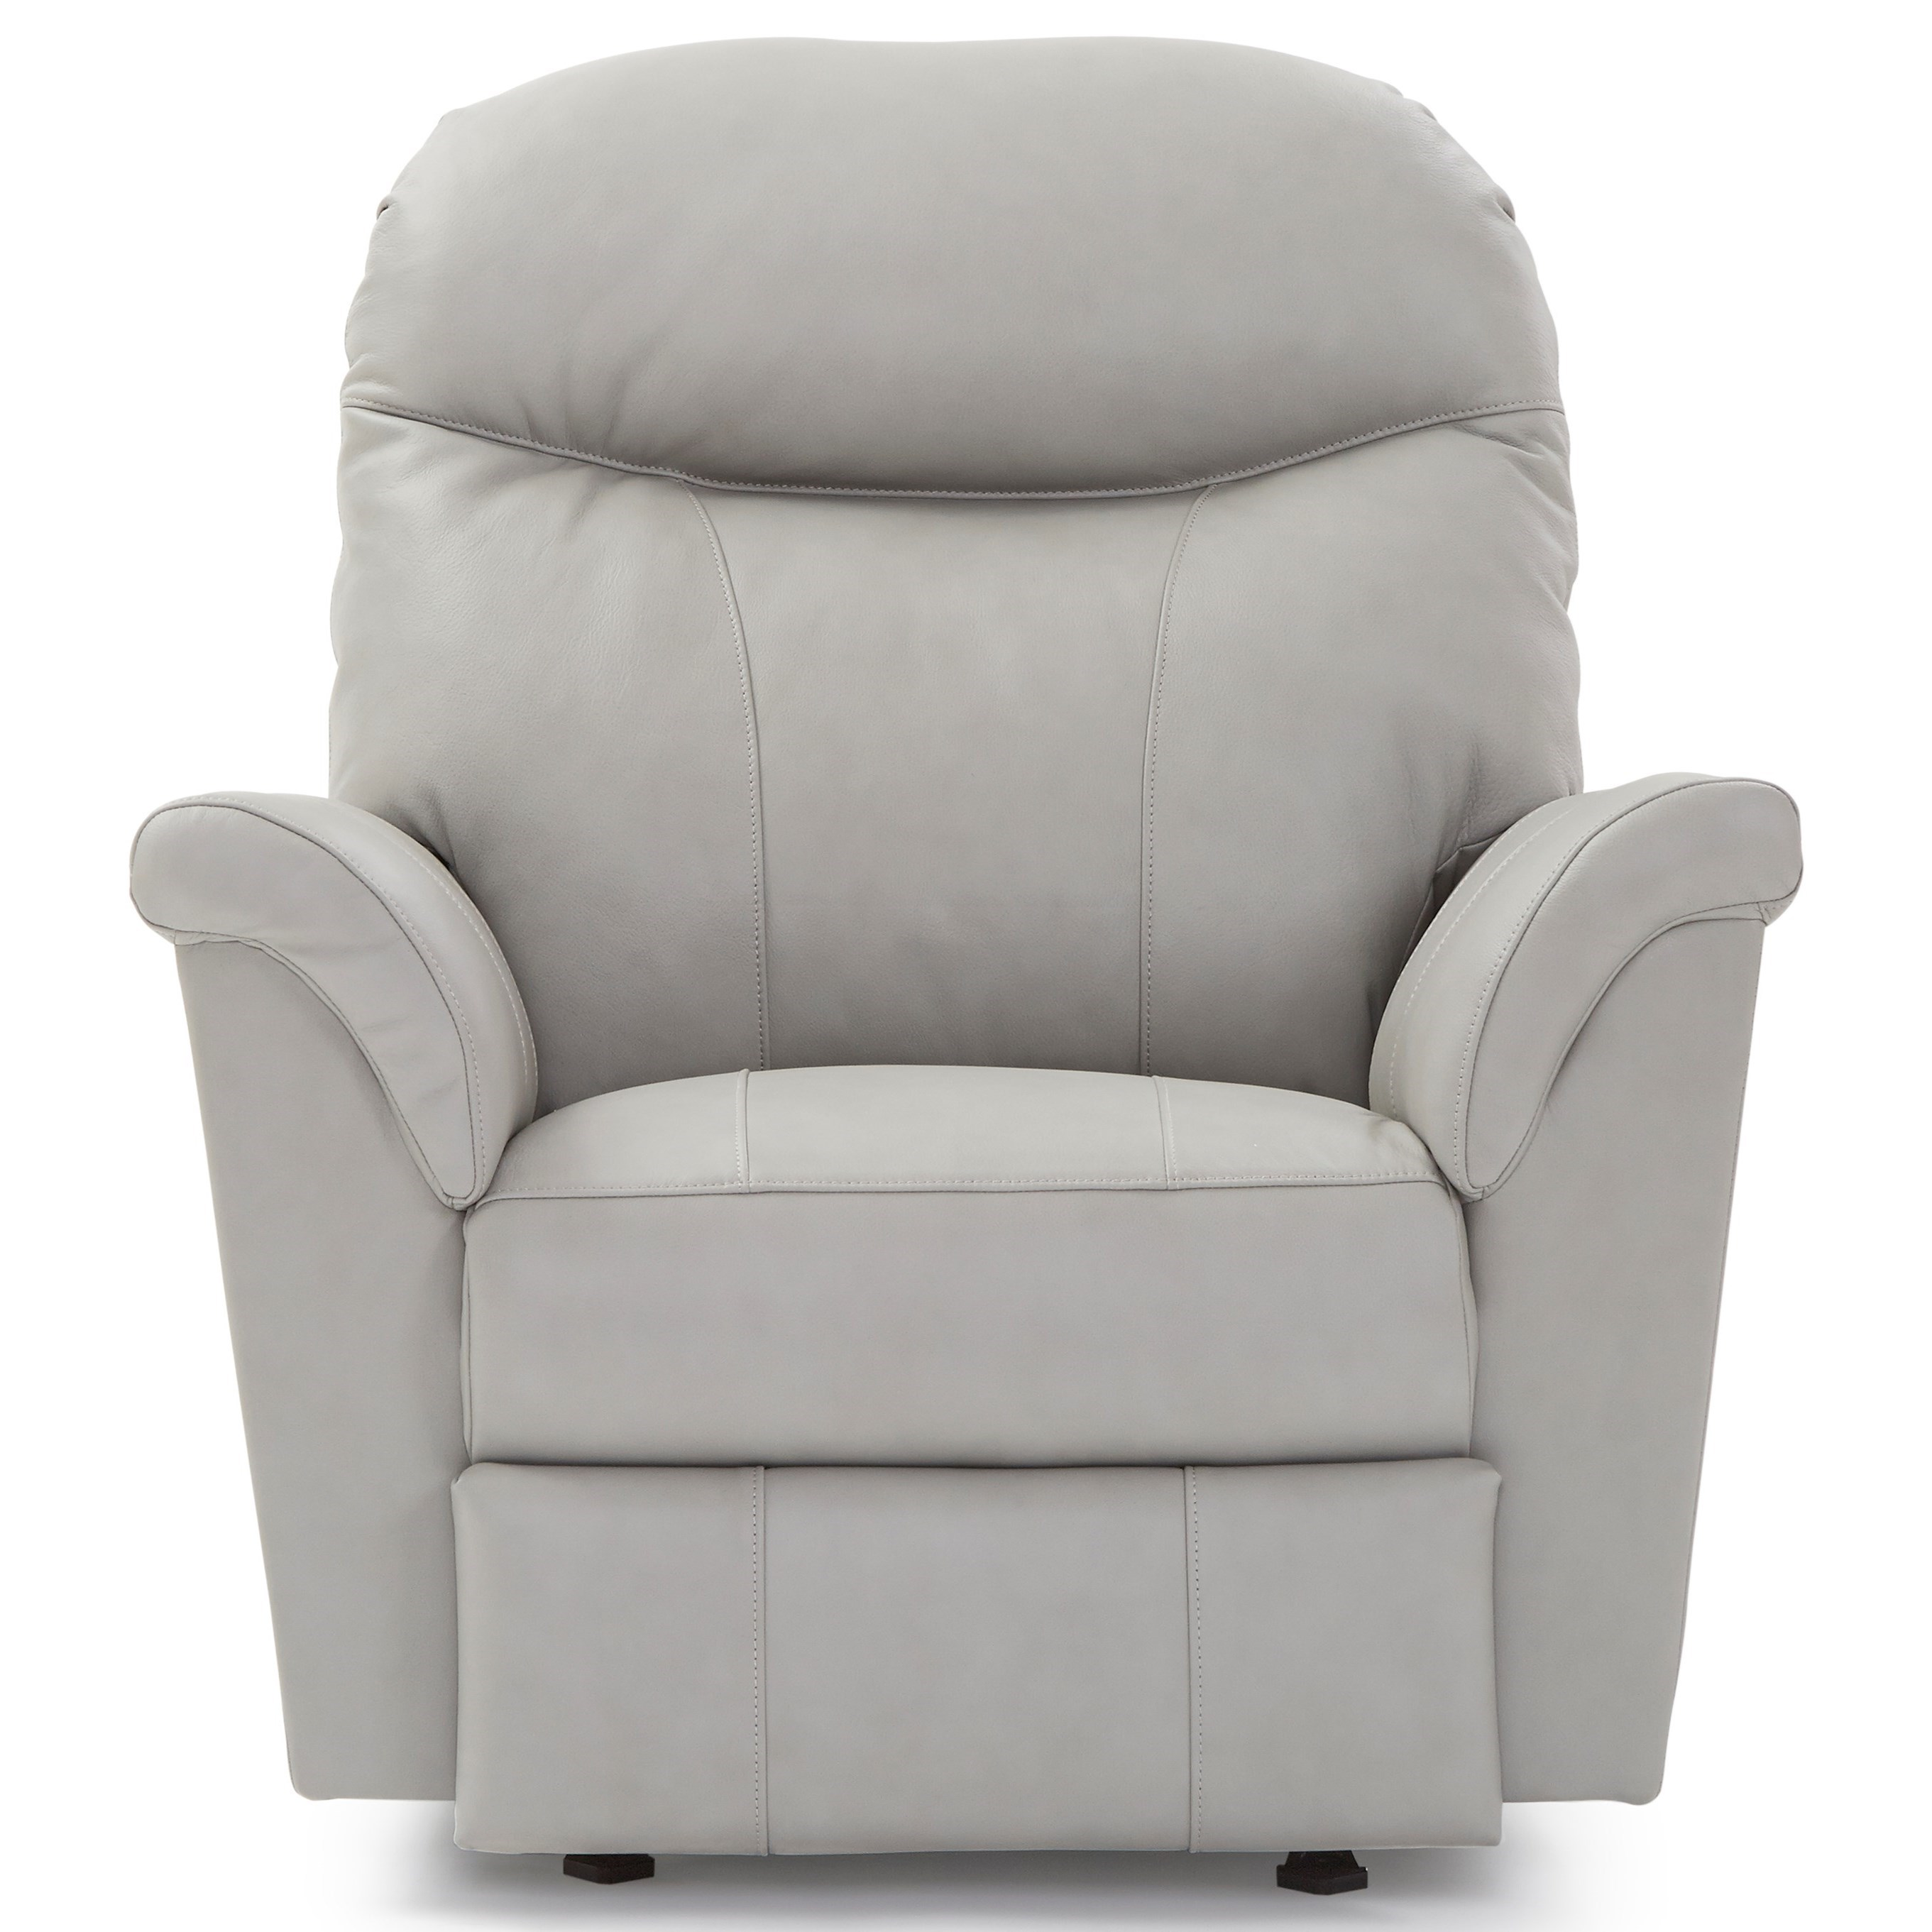 Caitlin Space Saver Recliner by Best Home Furnishings at Baer's Furniture